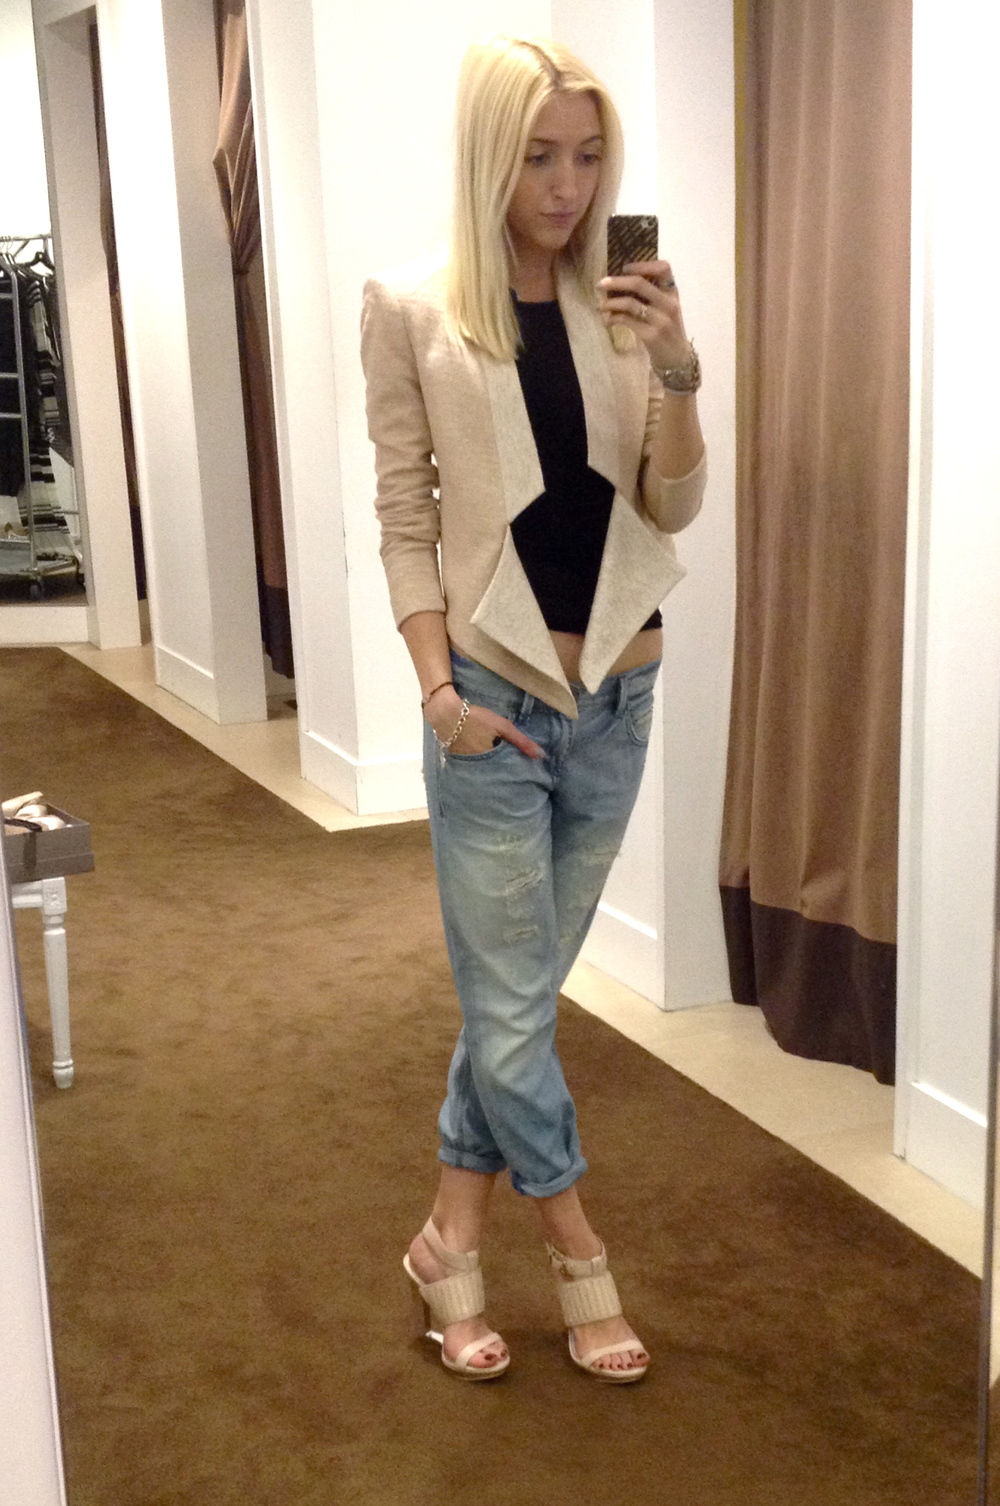 Outfit of the Day: Head-to-toe  BCBG Max Azria  Resort collection